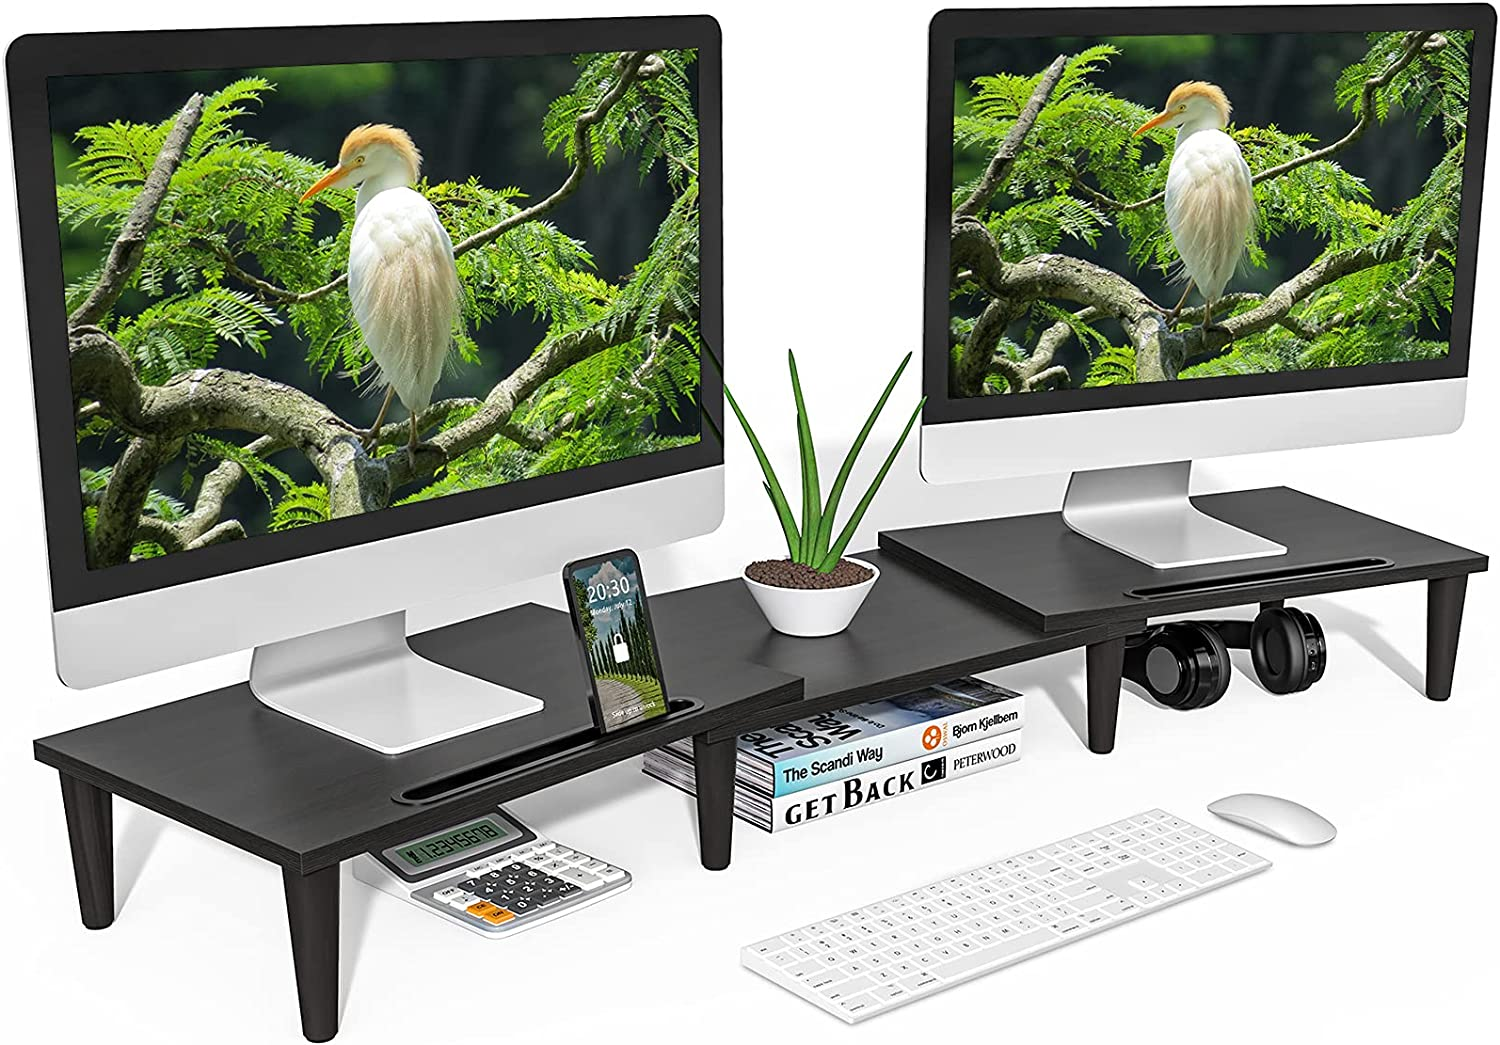 DOTER Dual Monitor Stand [Super Simple Assembly] Adjustable Length and Angle Computer Monitor Stand, with Tablet/Cellphone Slot Double Monitor Stand Riser for PC, Laptop, Compute, Printer etc (Black)